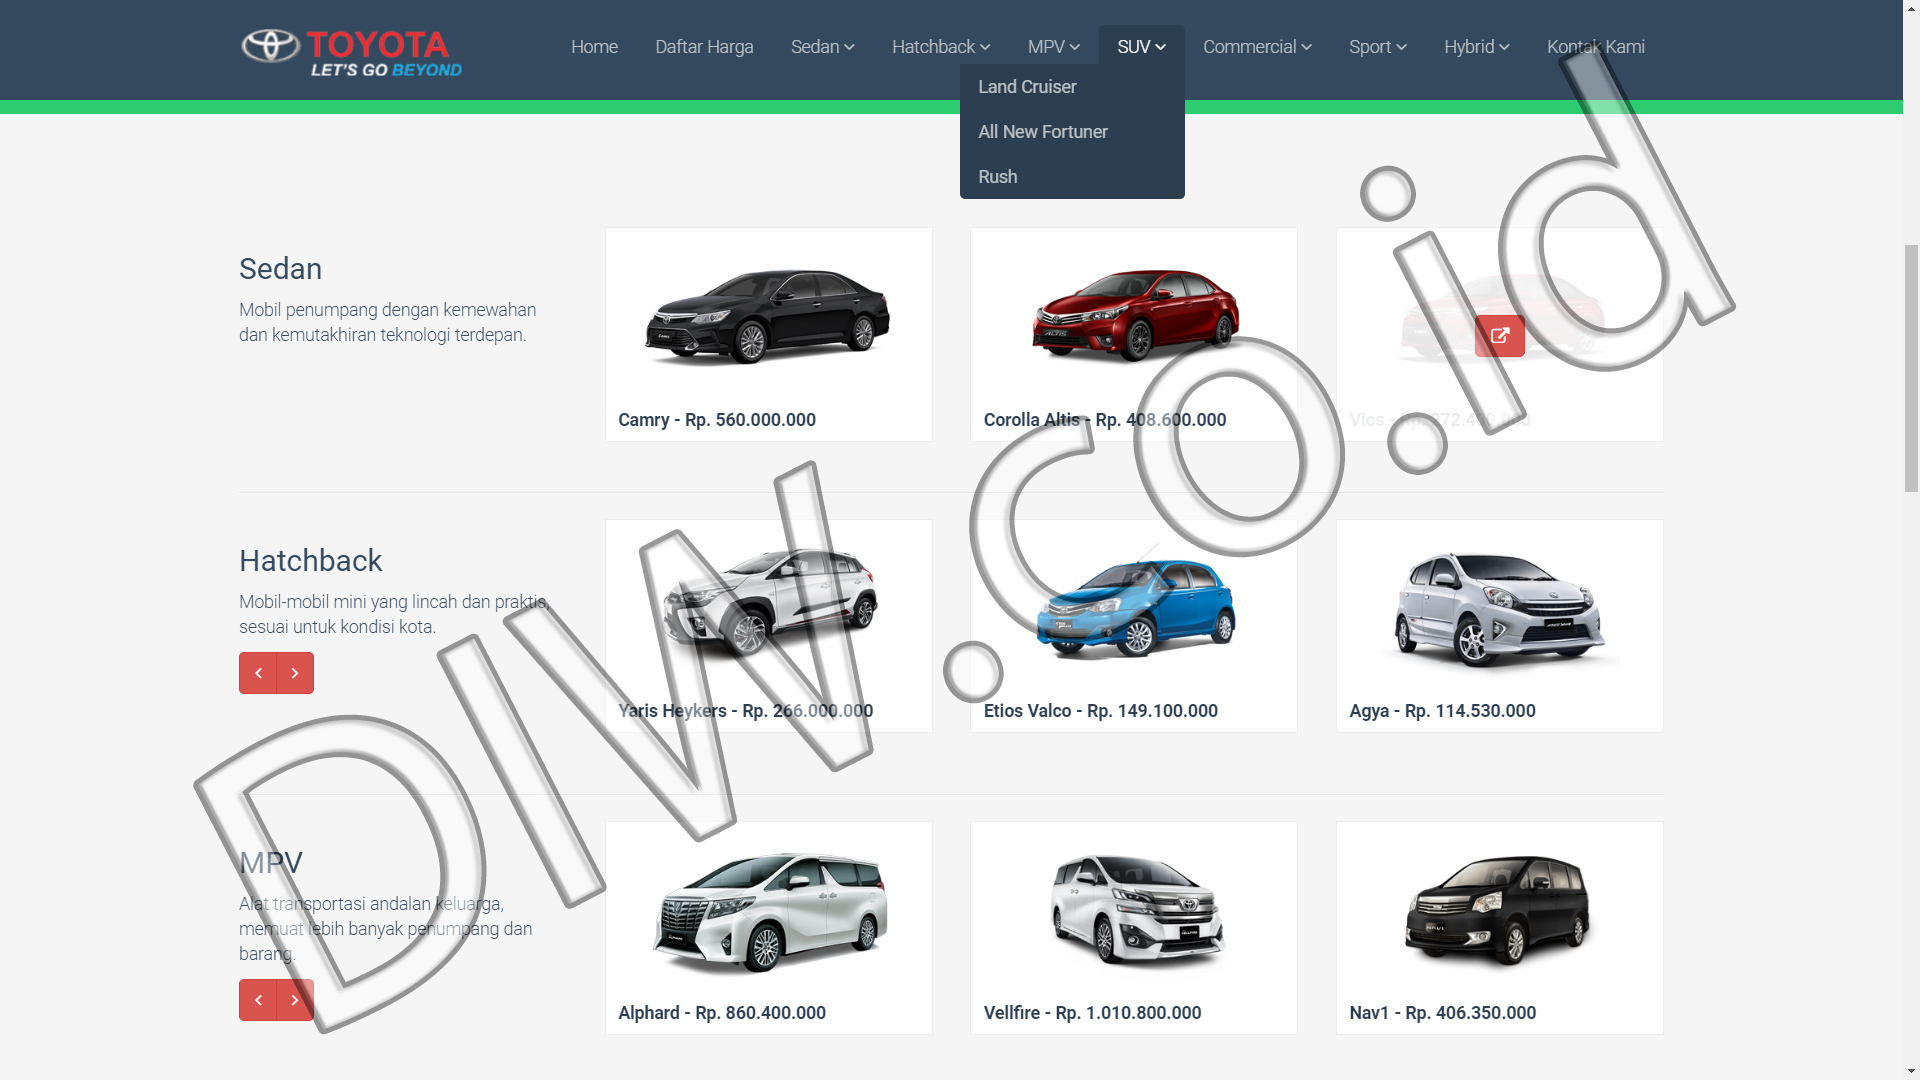 Portfolio 2 - Promo Baru Toyota - Andri Sunardi - Freelancer - Web Developer - CEO DIW.co.id